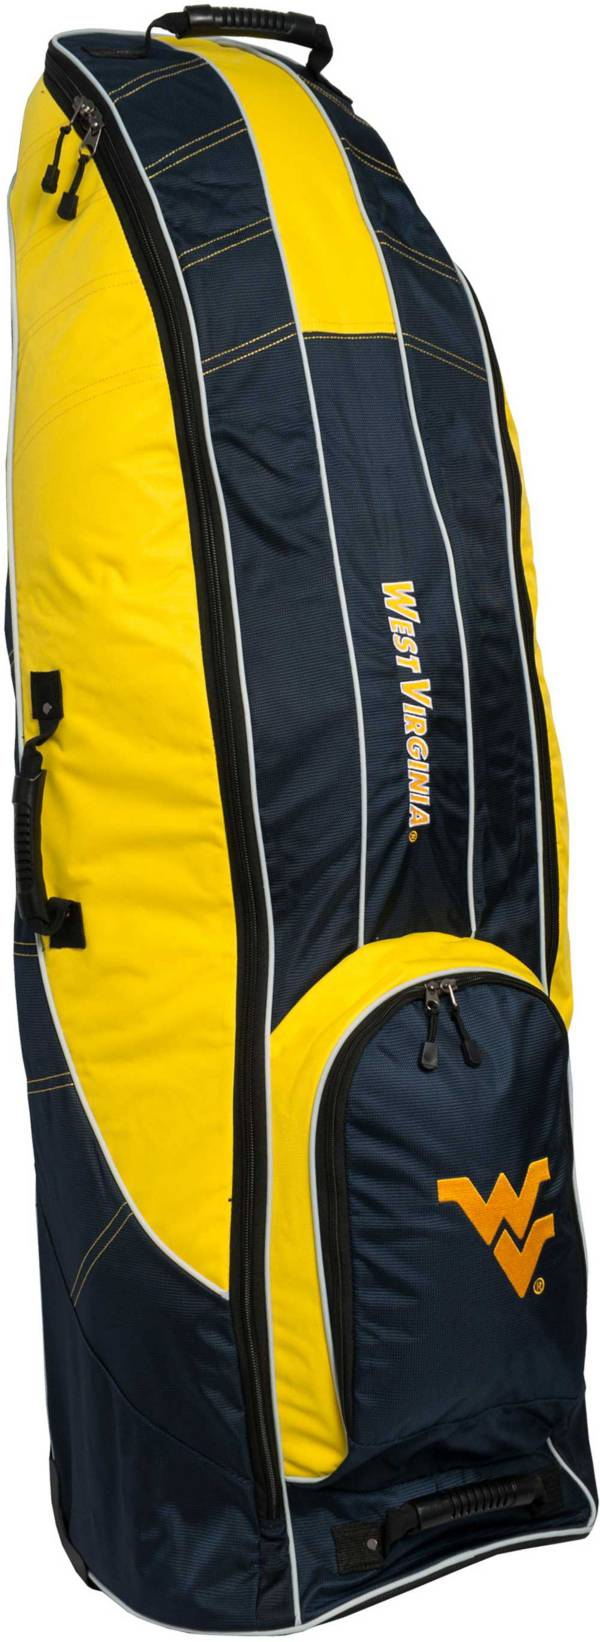 Team Golf West Virginia Mountaineers Travel Cover product image